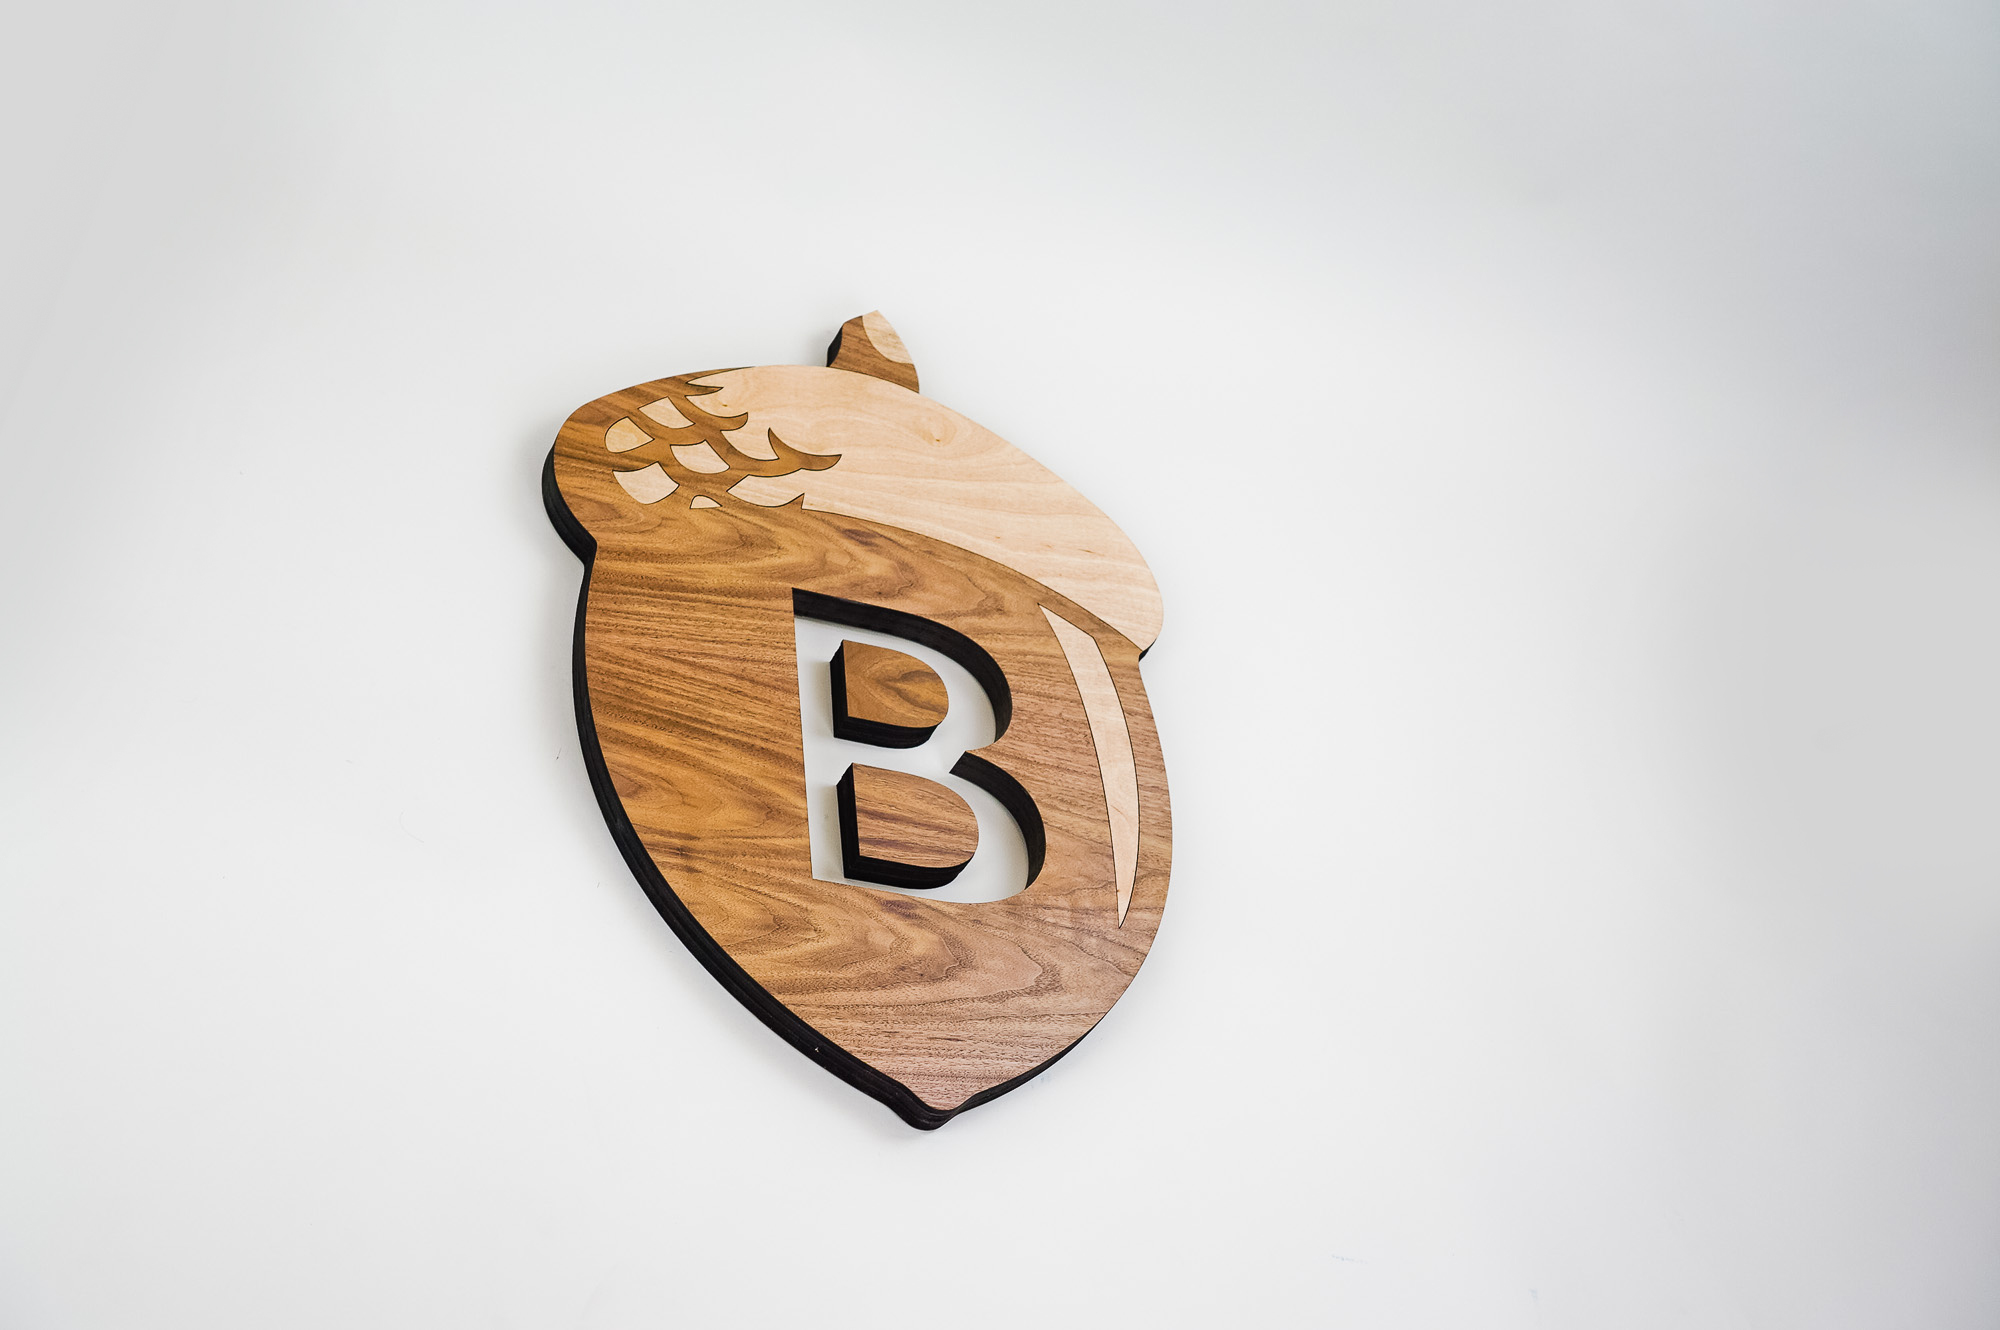 Wood sign for Beneficial State Bank, an Oakland, California-based community development bank.